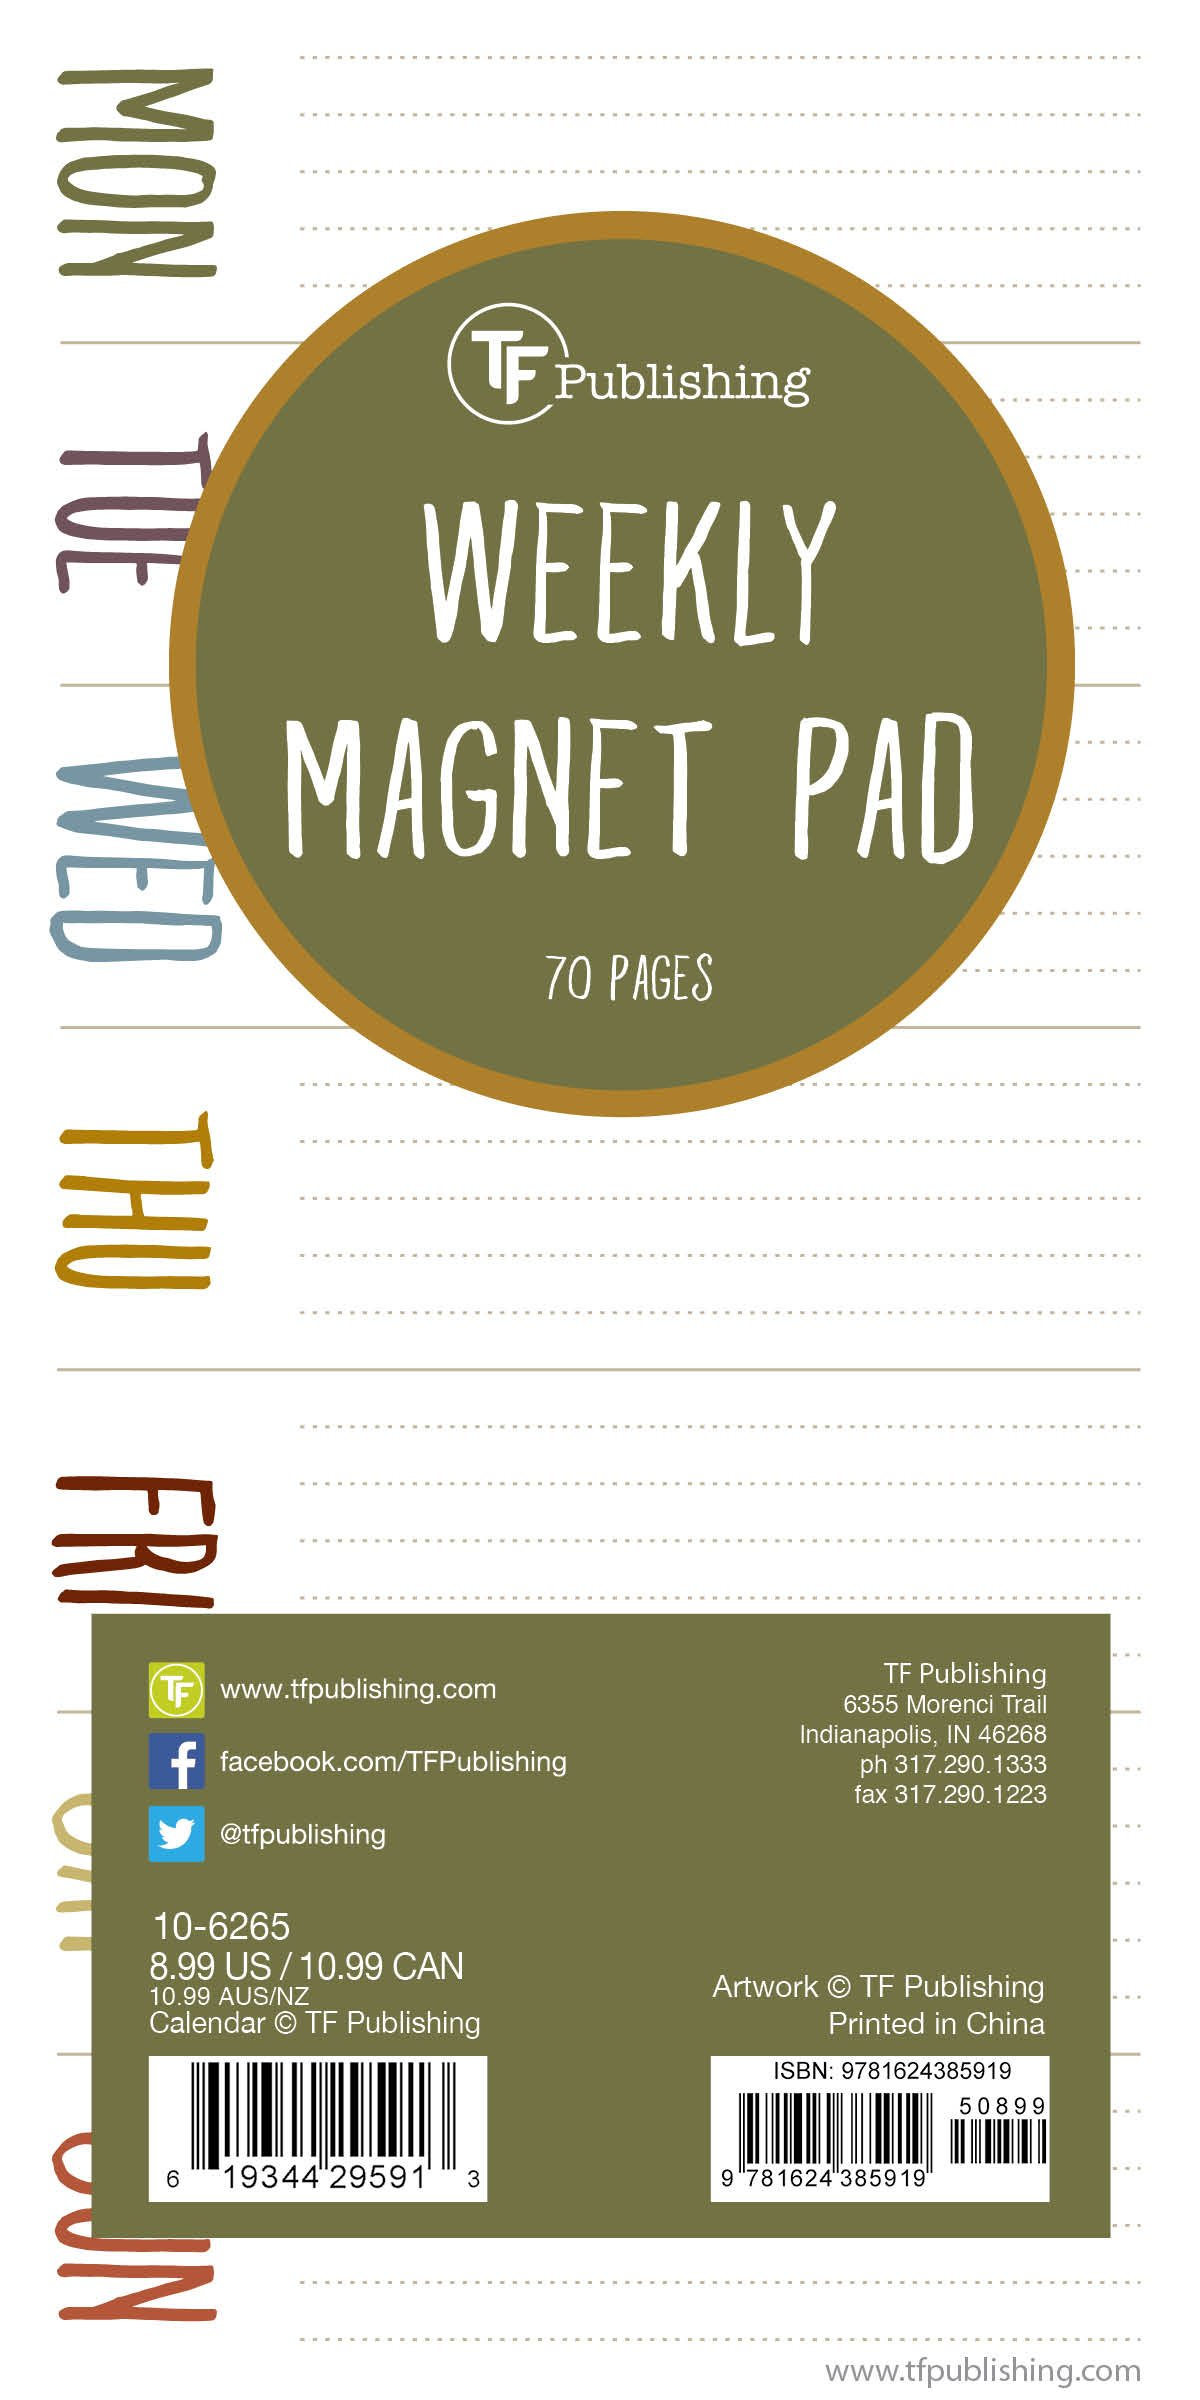 Earth Days Weekly Magnet Pad: 70 Pages